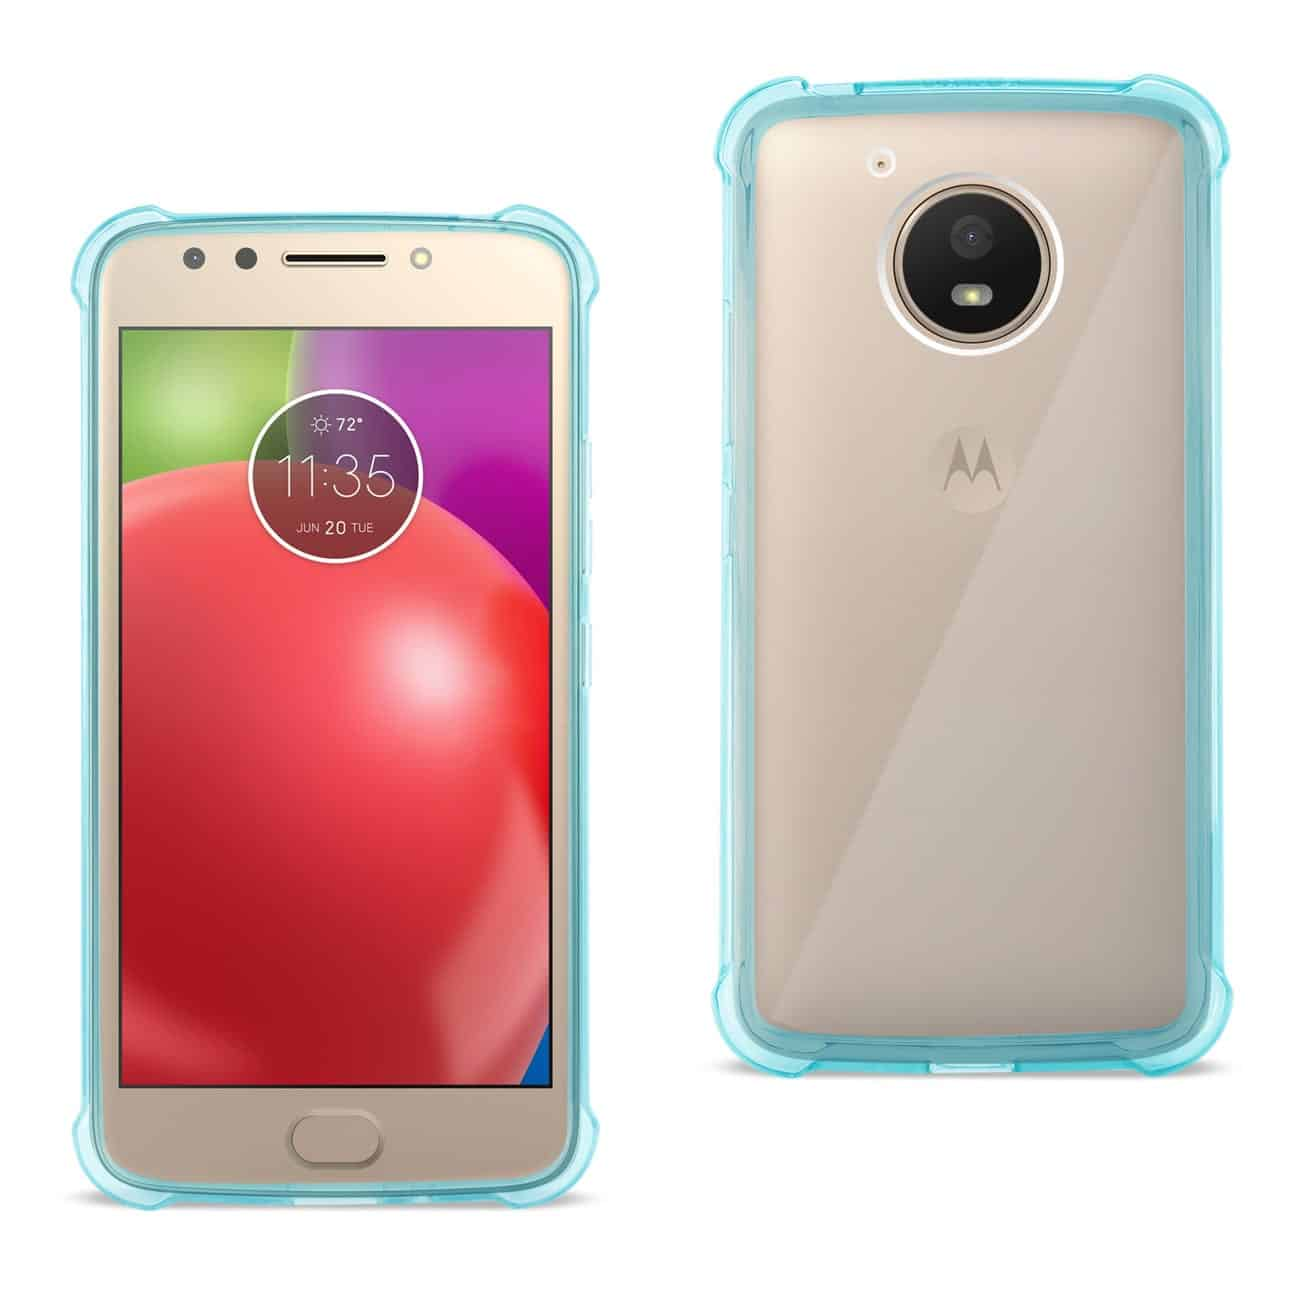 MOTOROLA MOTO E4 ACTIVE CLEAR BUMPER CASE WITH AIR CUSHION PROTECTION IN CLEAR NAVY